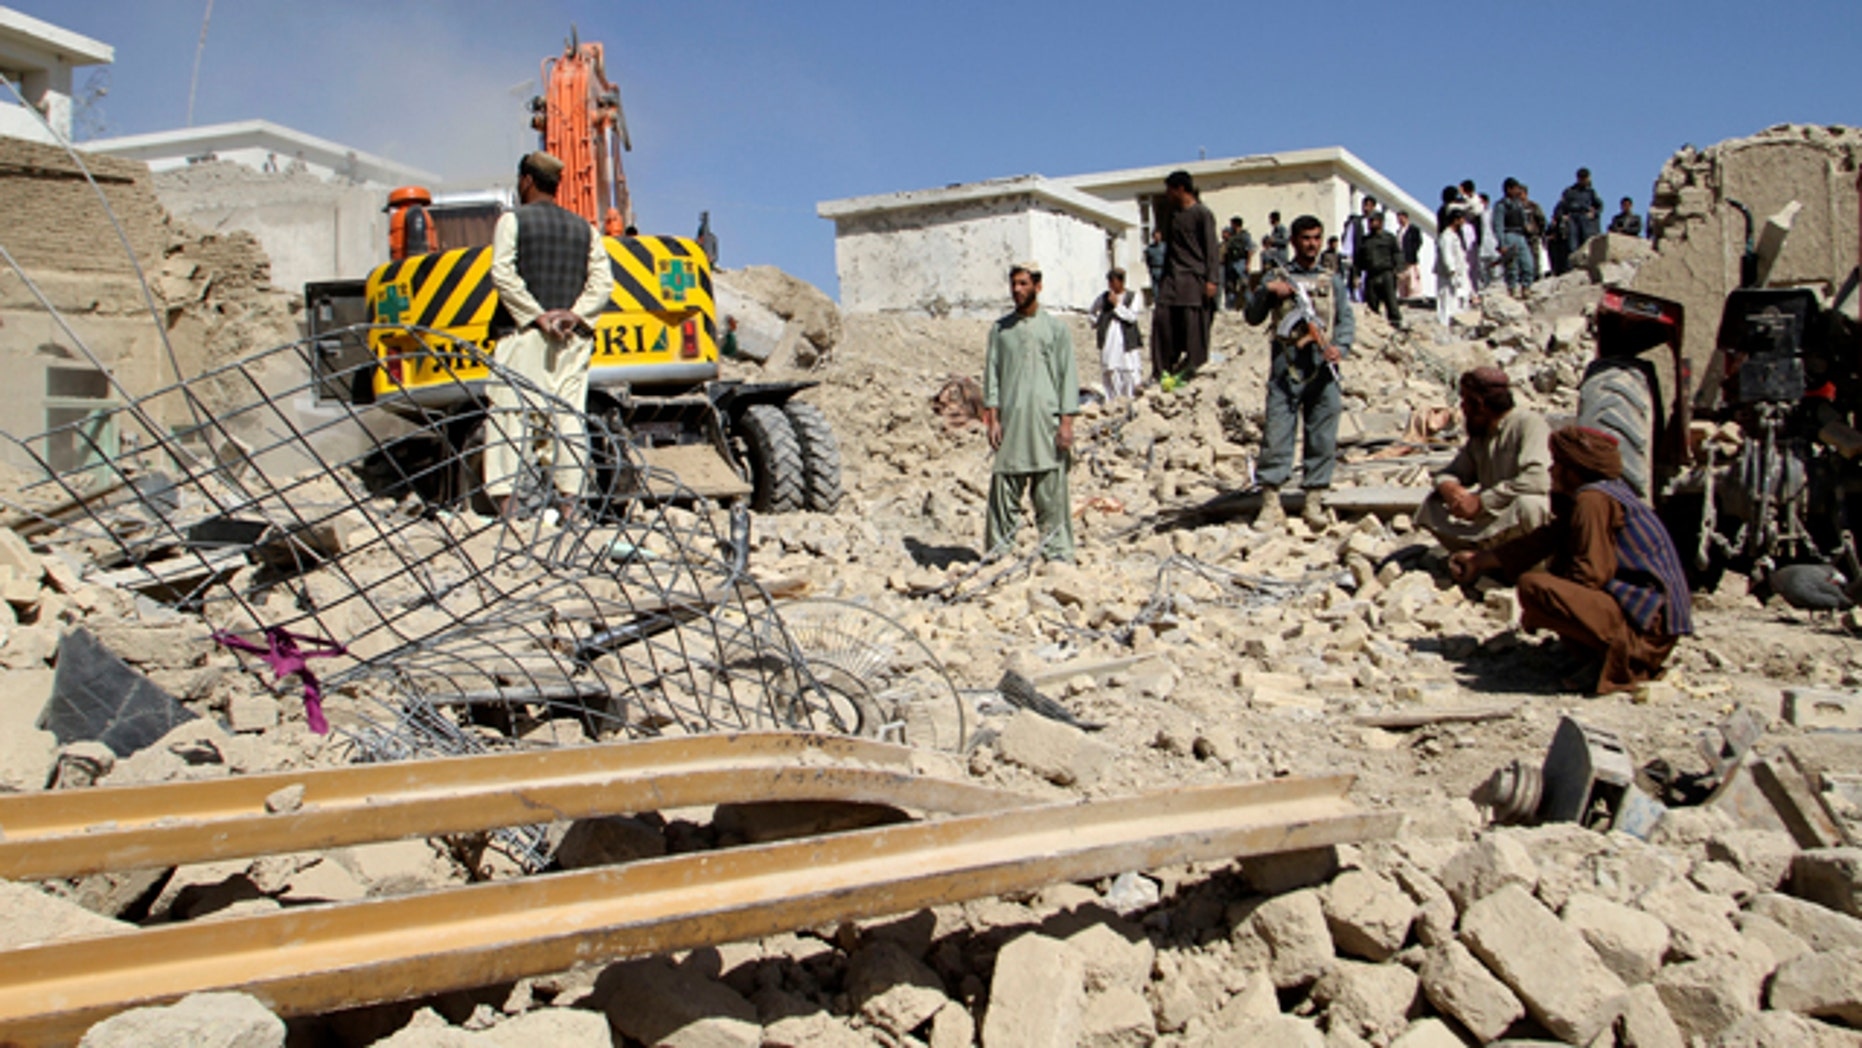 April 21, 2015: Afghan security forces work at the site of a bombing in Kandahar, south of Kabul. (AP Photo)